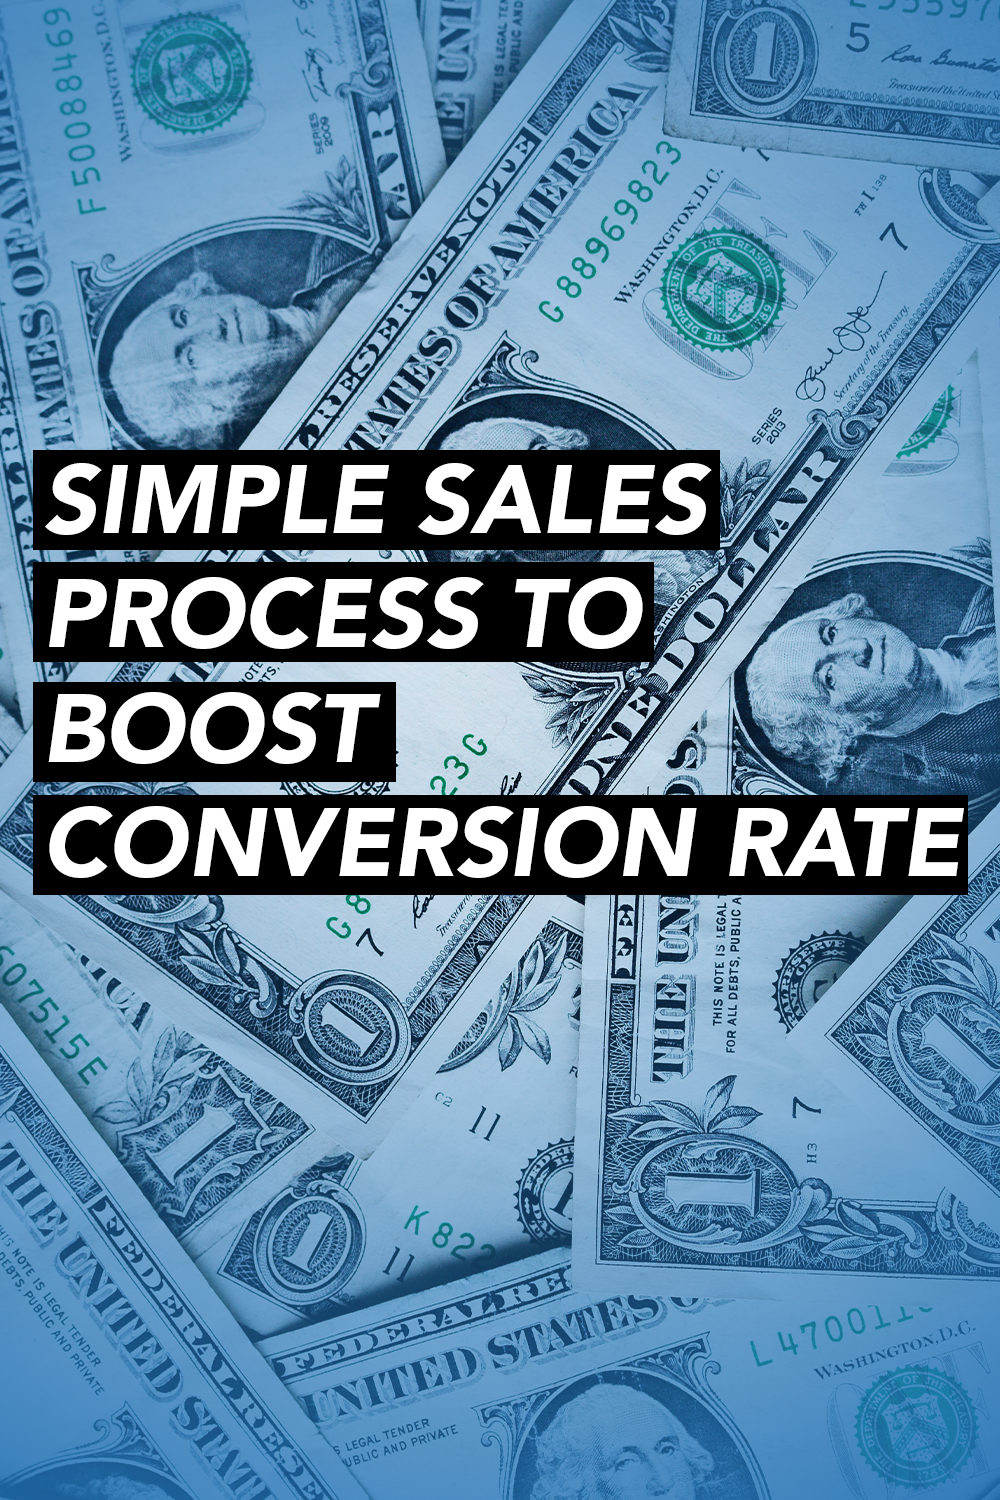 Simple Sales Process To Boost Conversion Rate [VIDEO]